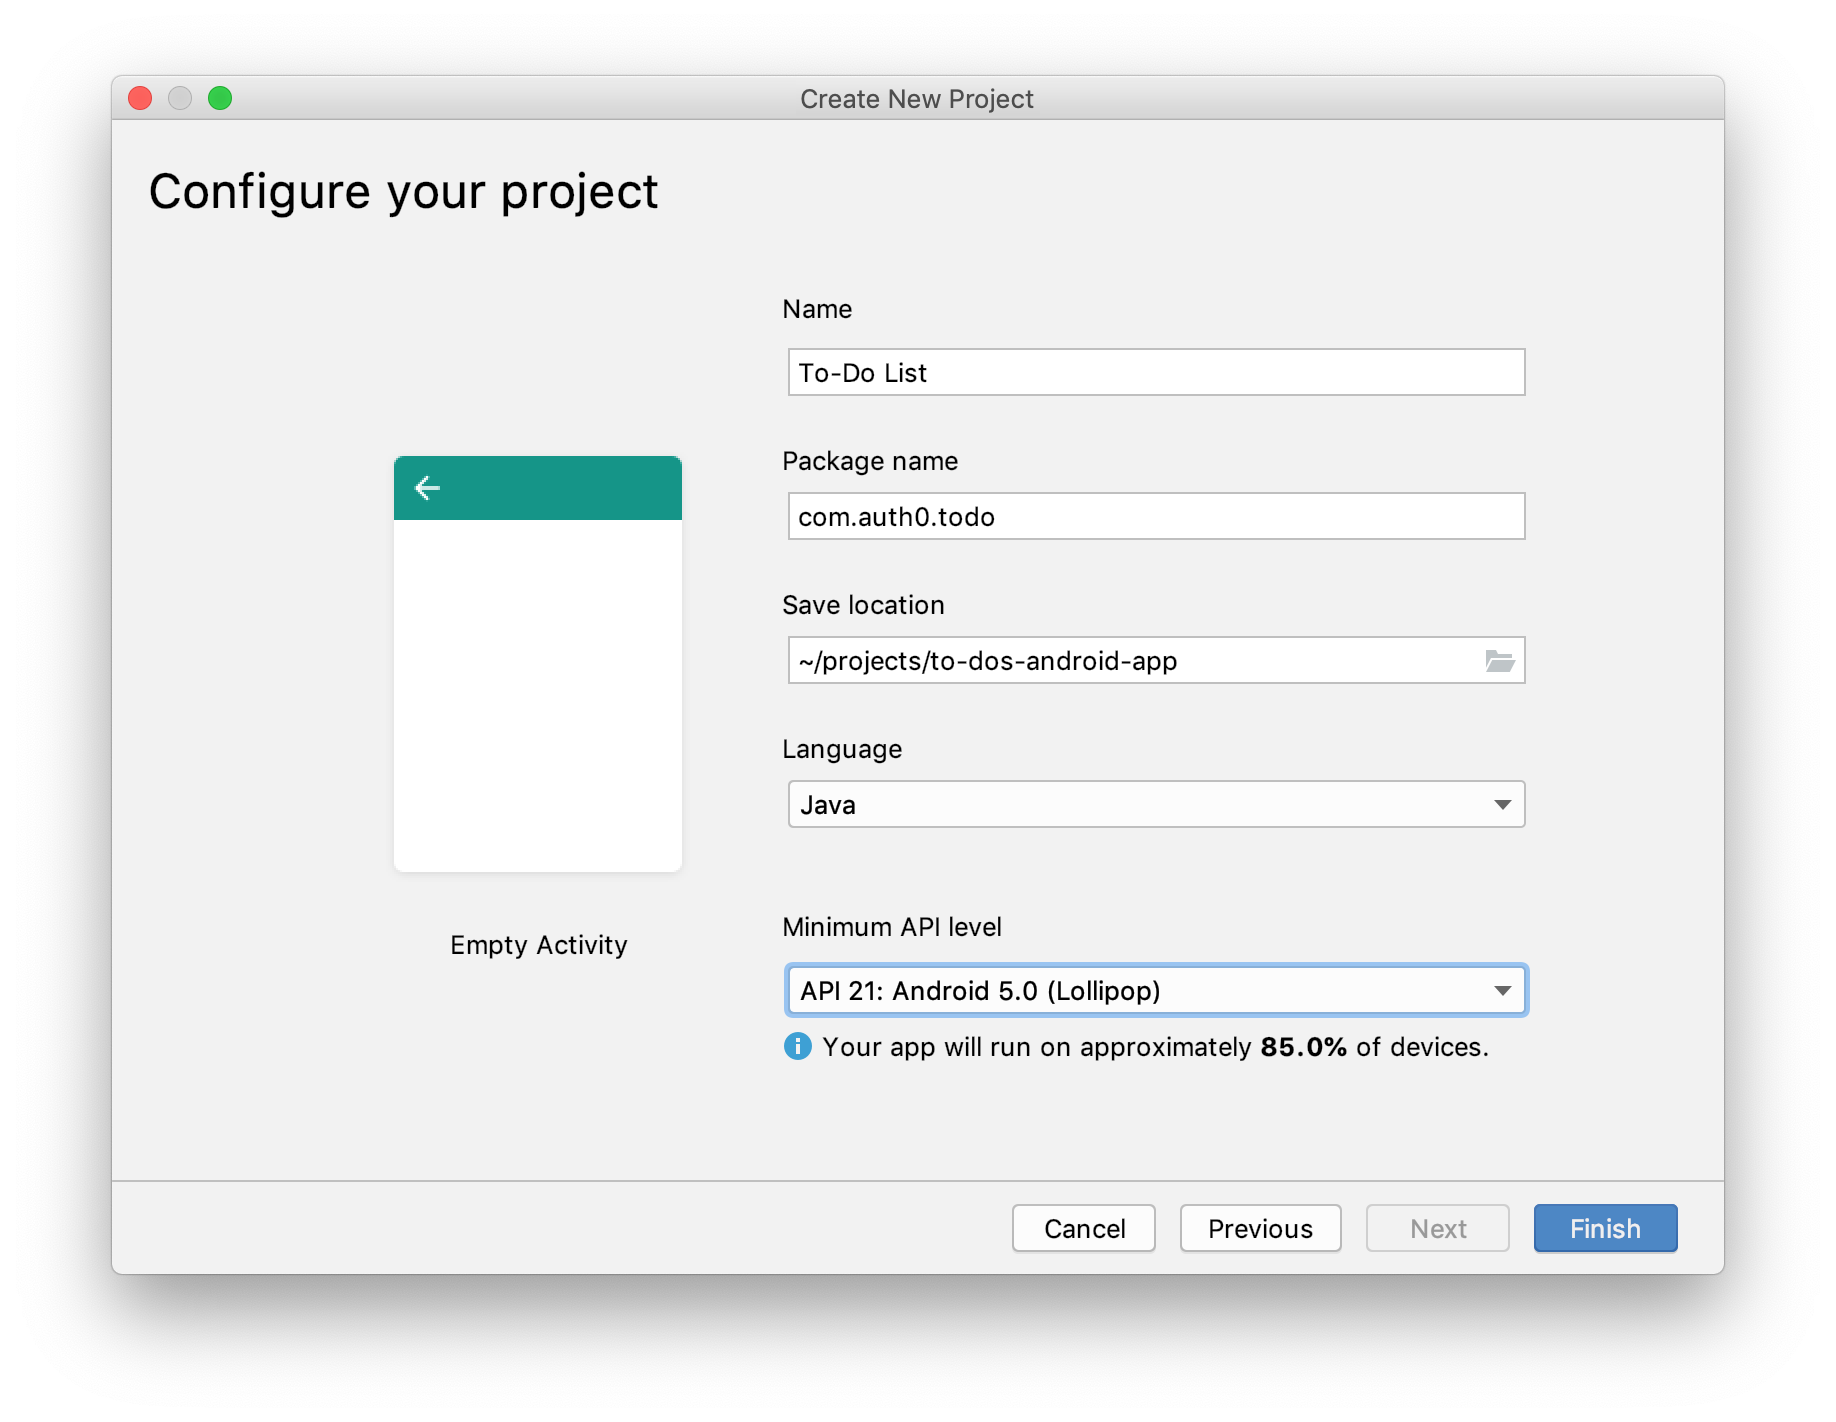 Configure the final settings of your new Android project.